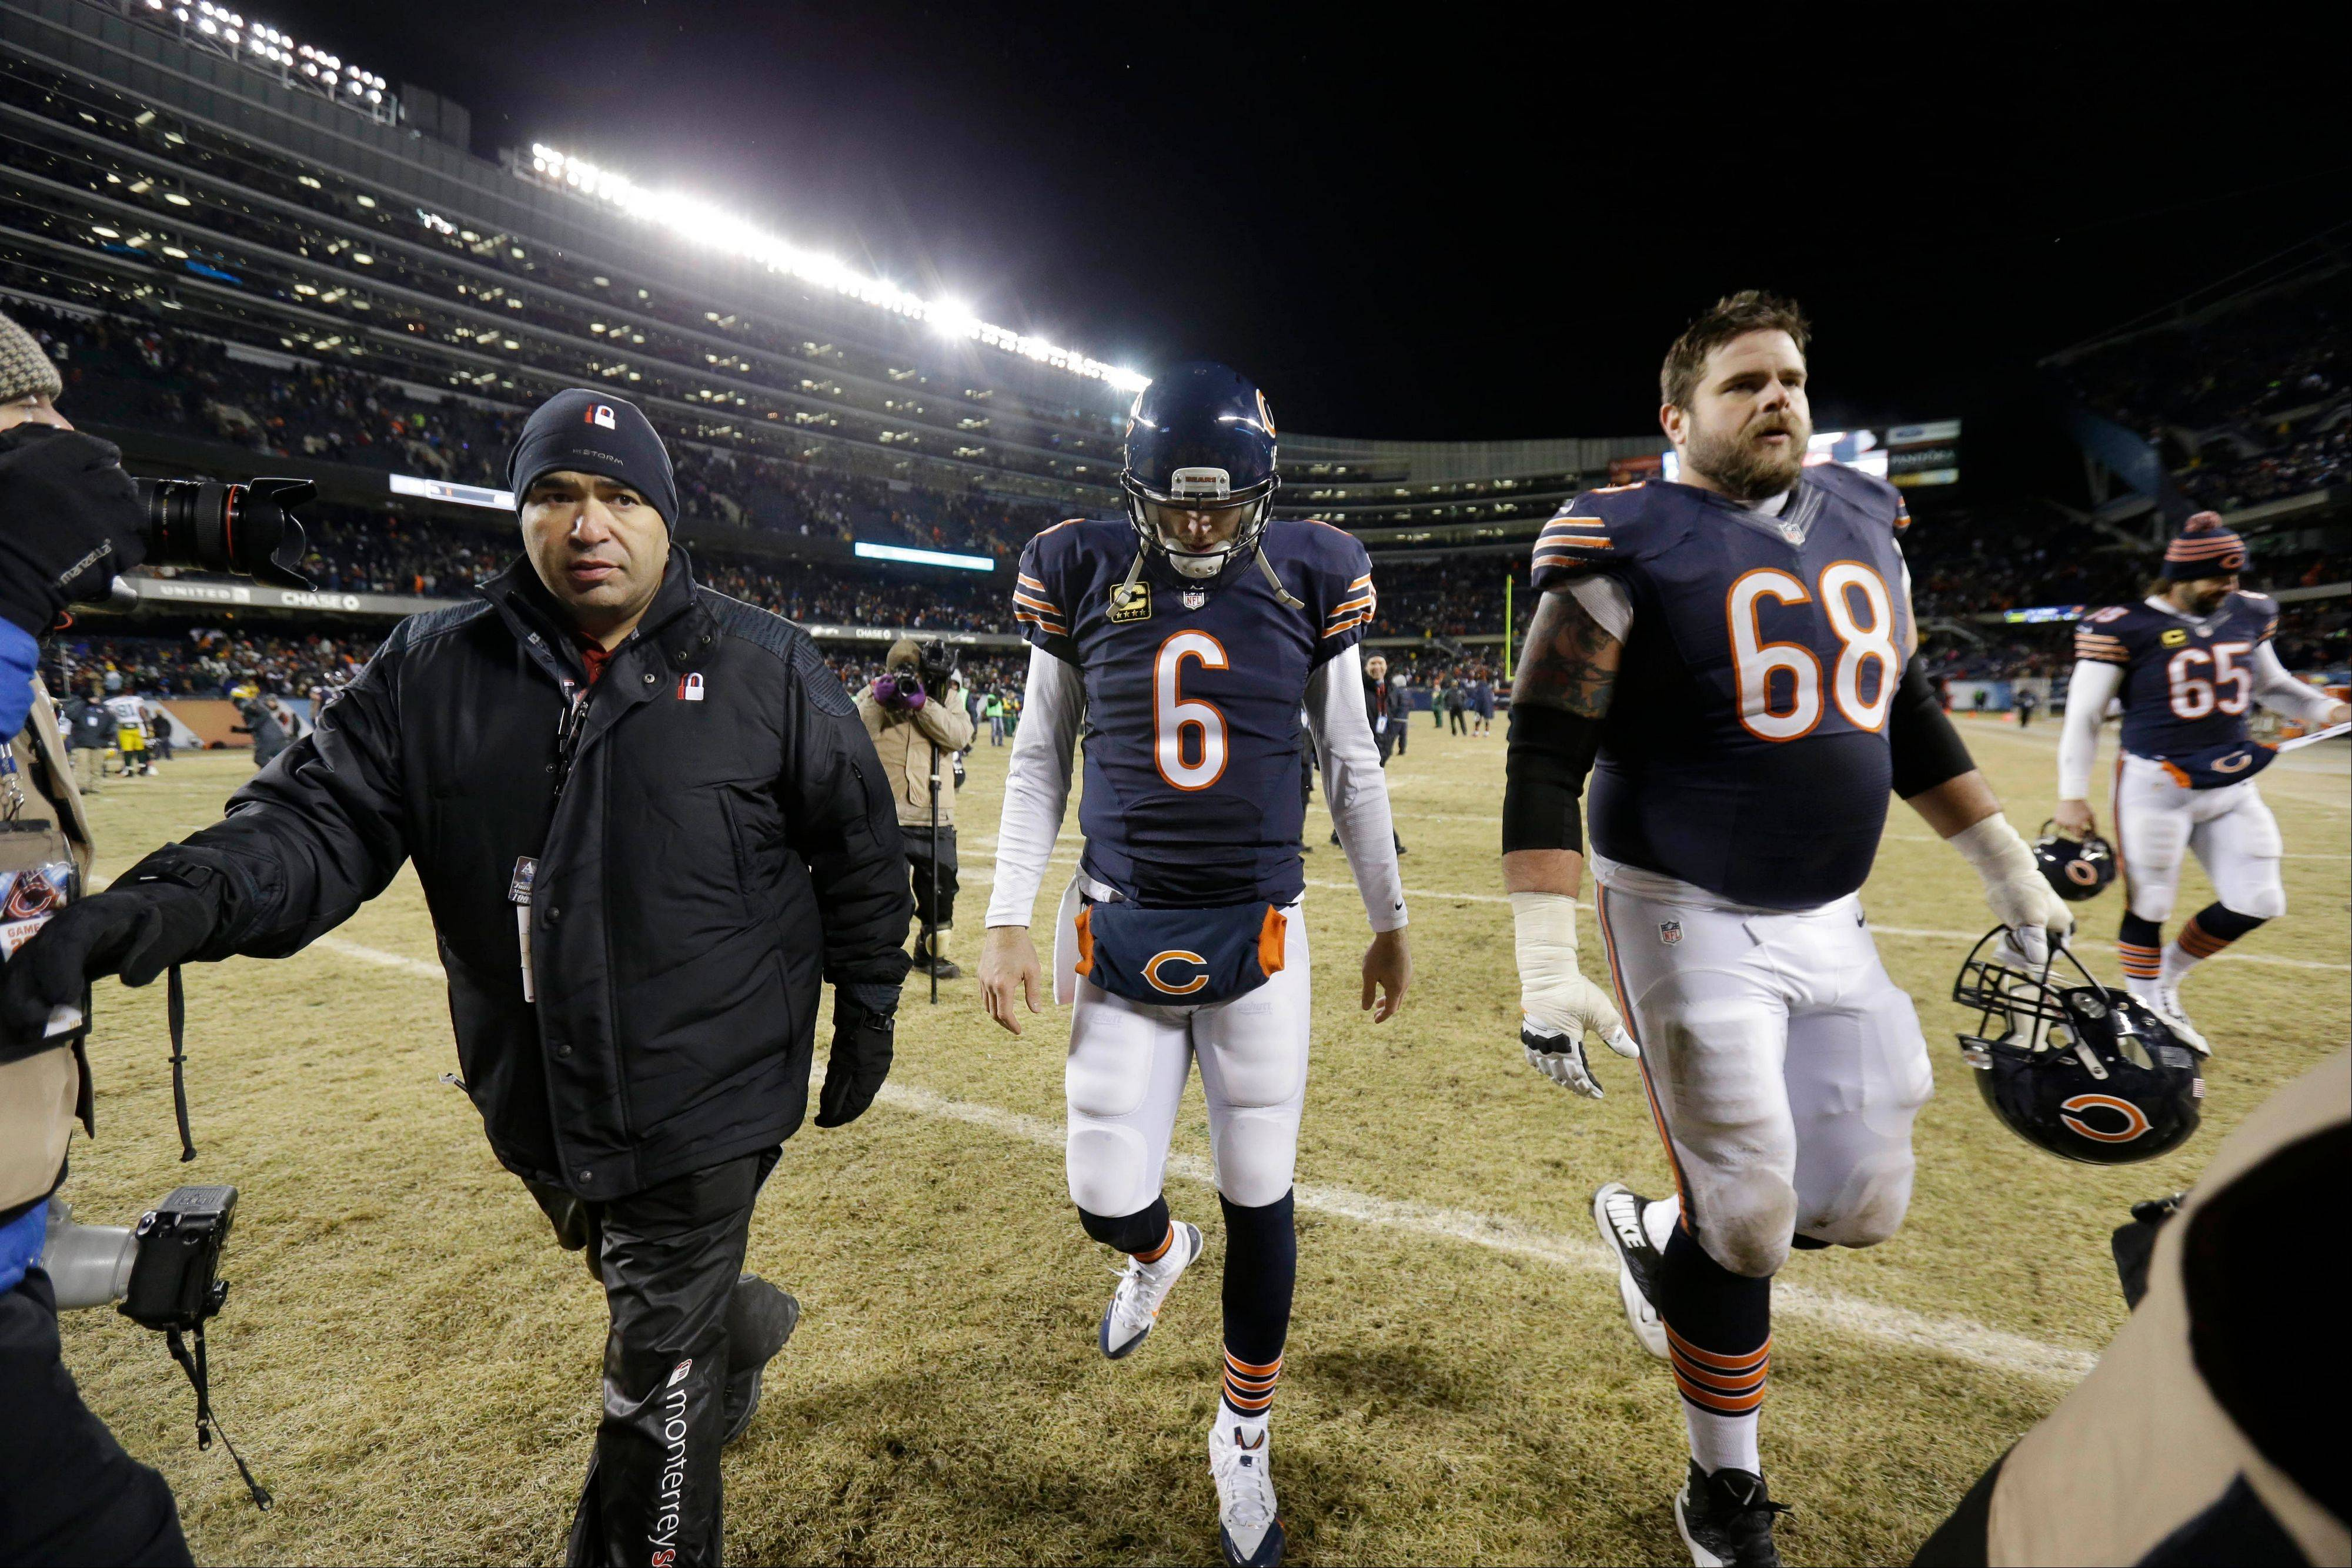 Jay Cutler walks off the field after the Bears' 33-28 loss to the Green Bay Packers in an NFL football game Sunday in Chicago.